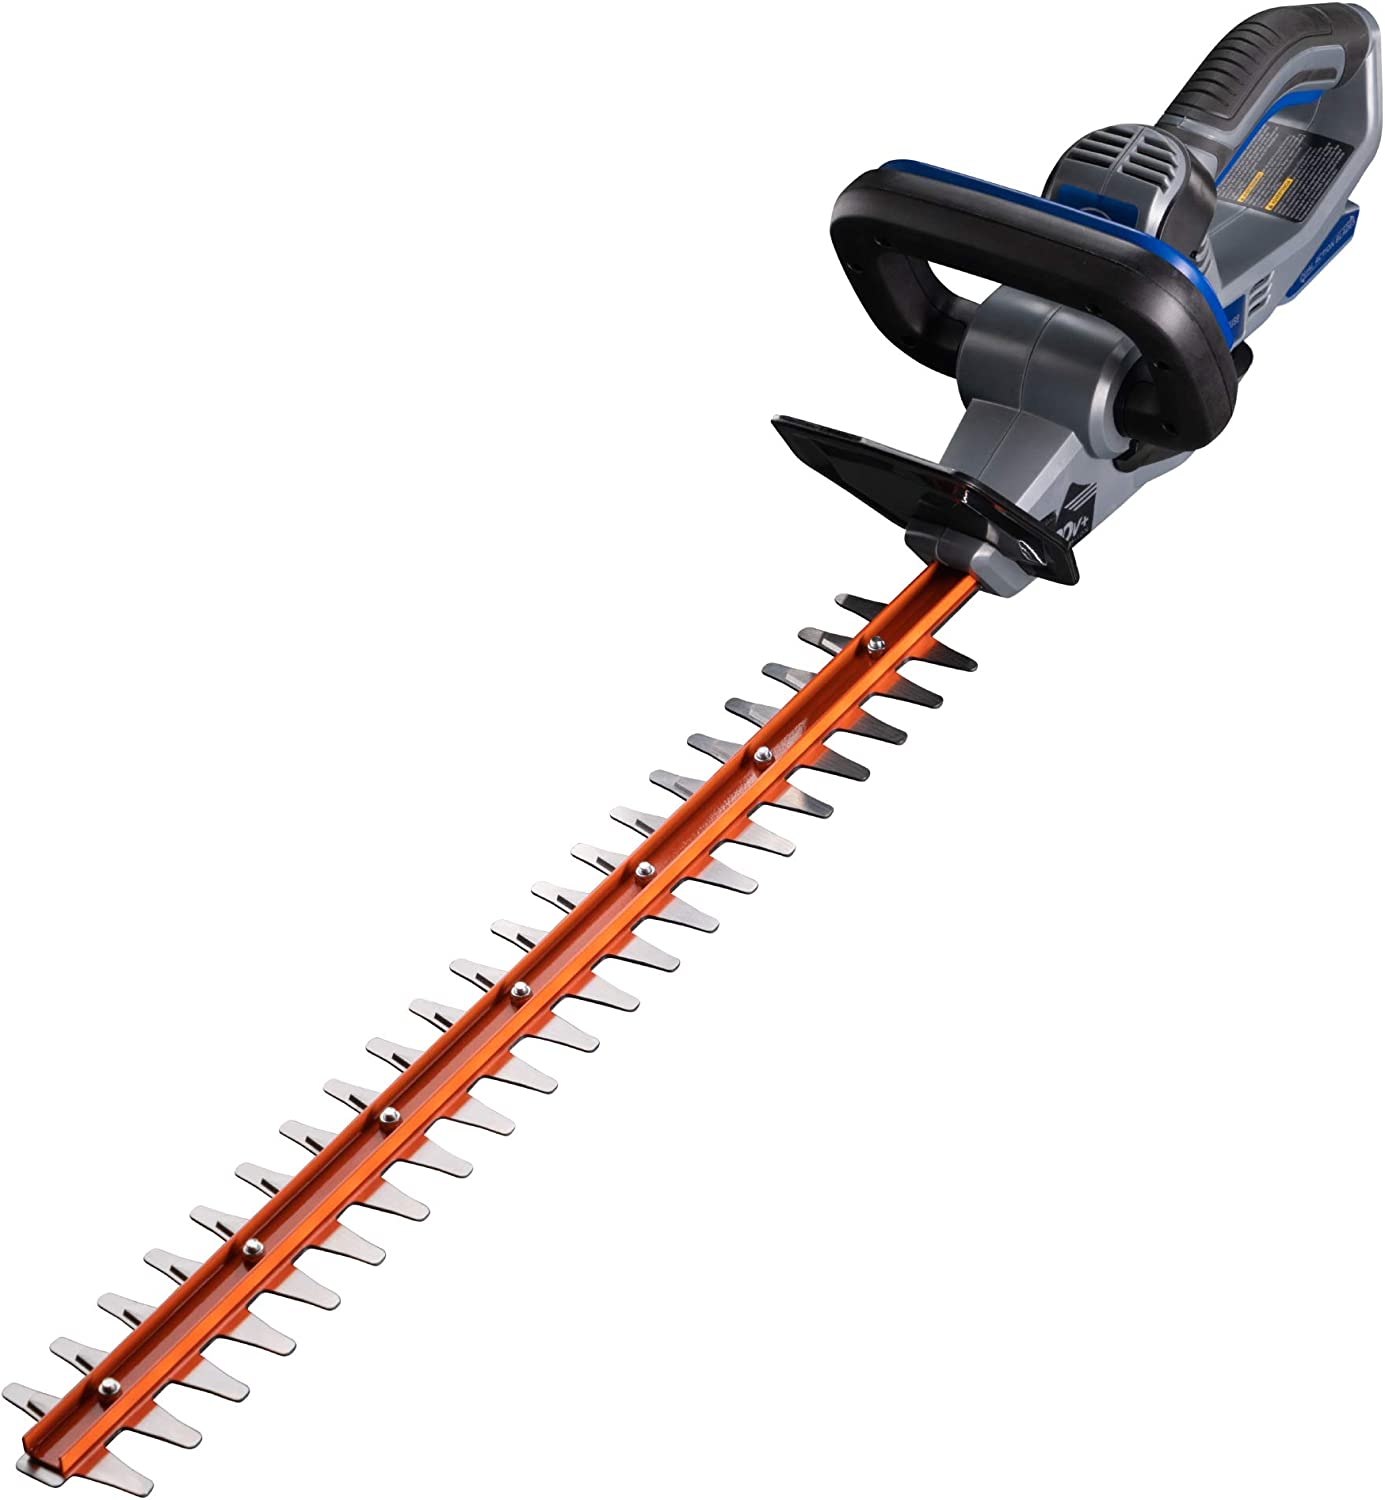 Westinghouse Finally popular brand Outdoor Power Equipment Ranking TOP10 Too Hedge Trimmer Cordless